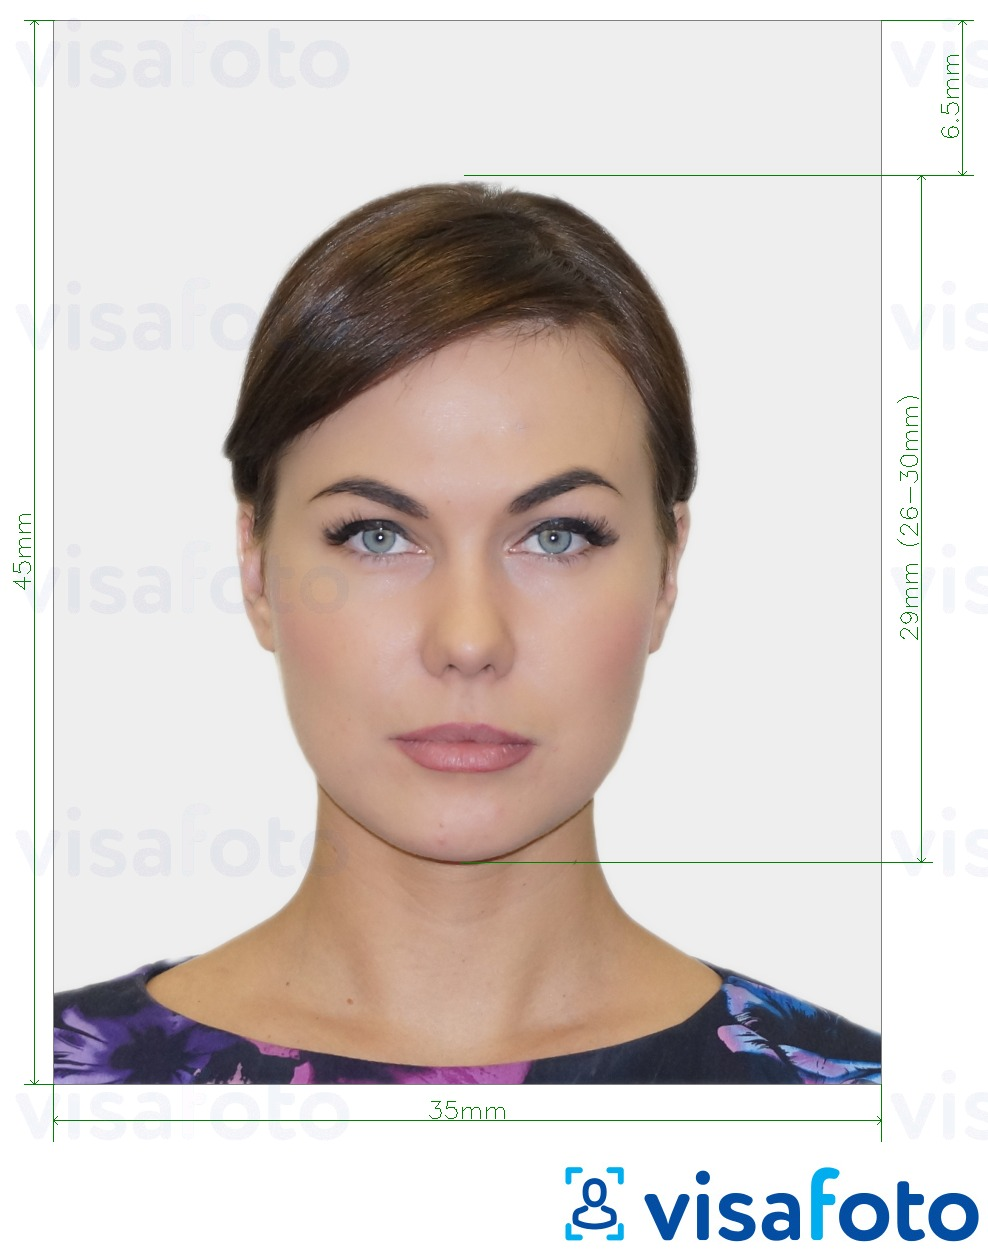 Example of photo for Netherlands Passport 35x45 mm (3.5x4.5 cm) with exact size specification